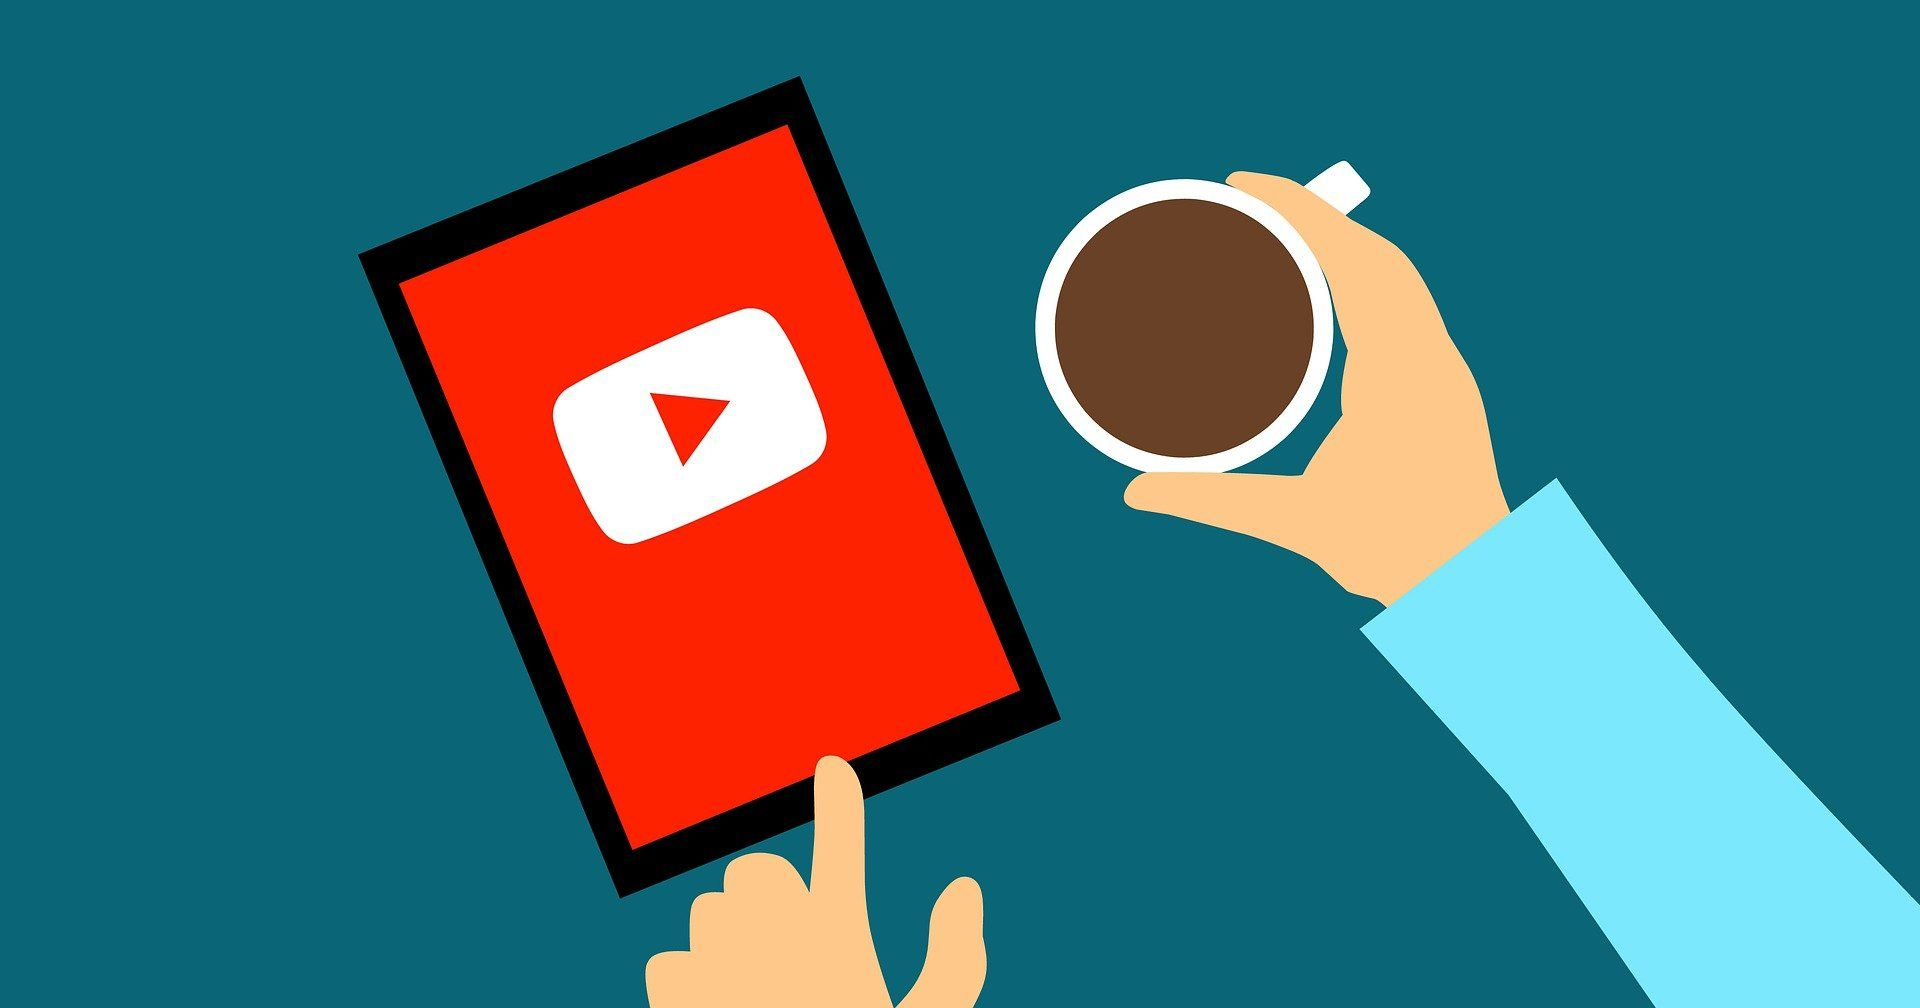 How to Permanently Change YouTube Video Quality